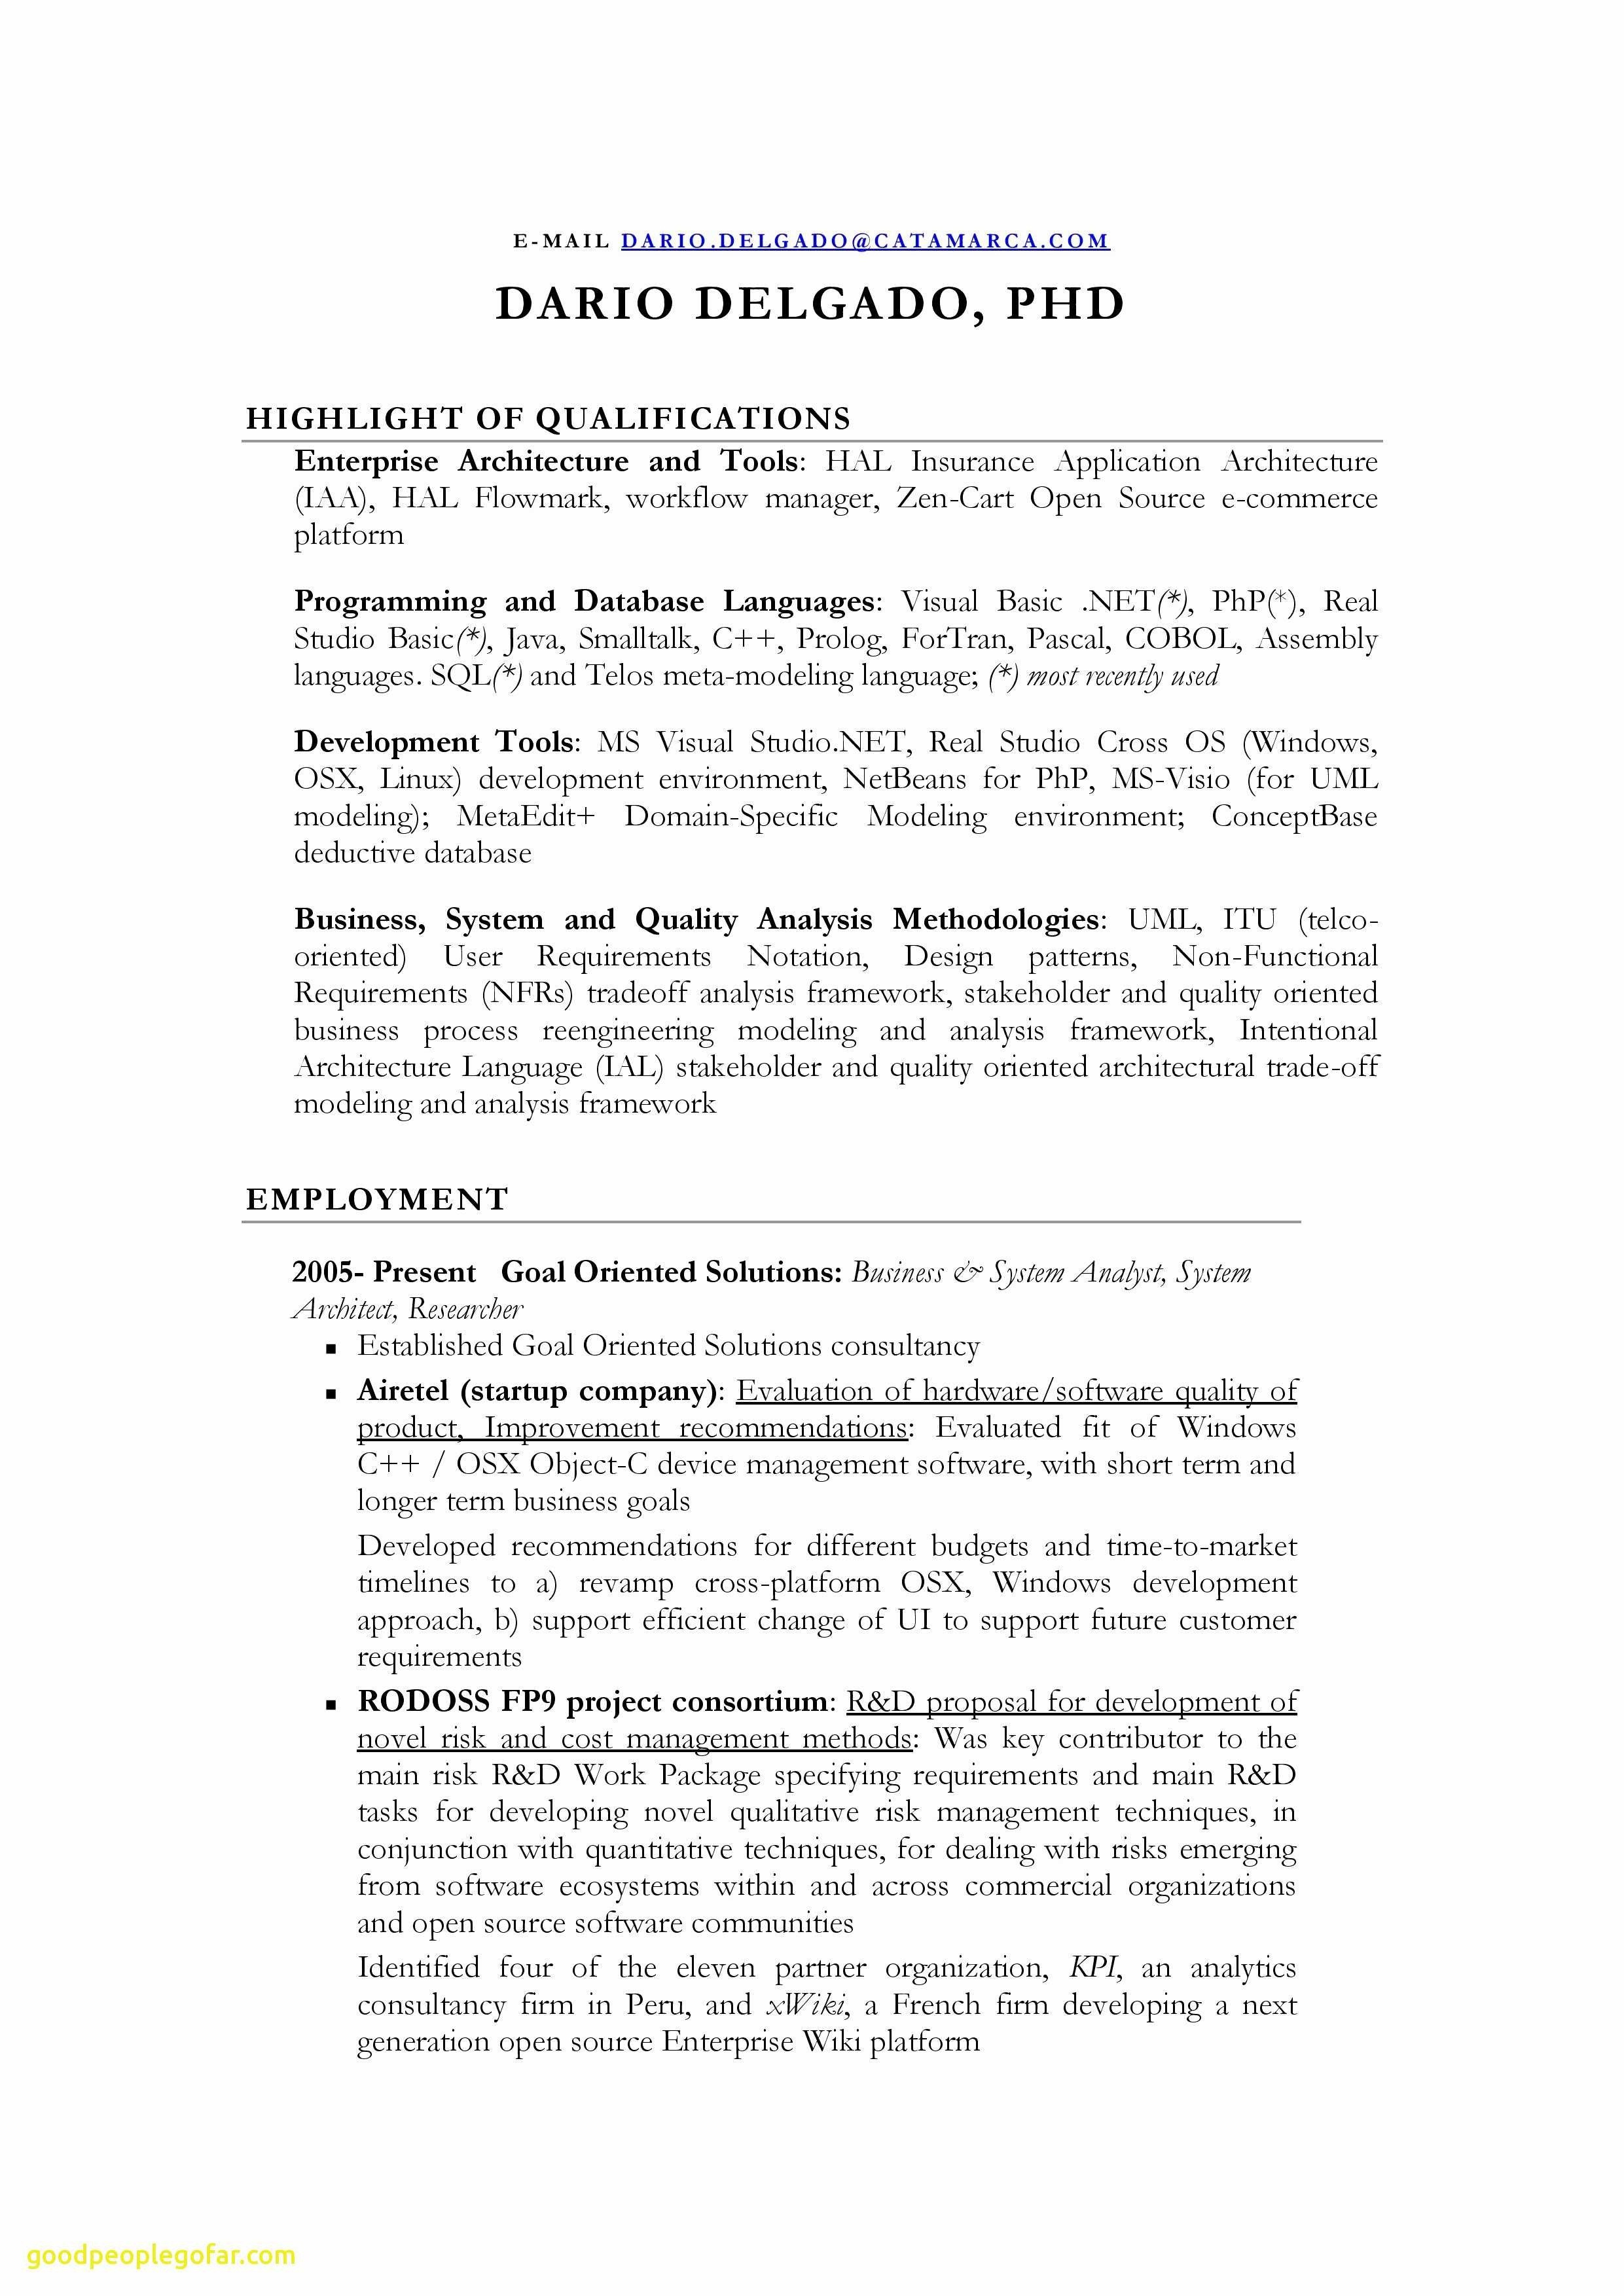 Resume Template for Business Analyst - System Analyst Resume Beautiful Fresh Programmer Resume Template